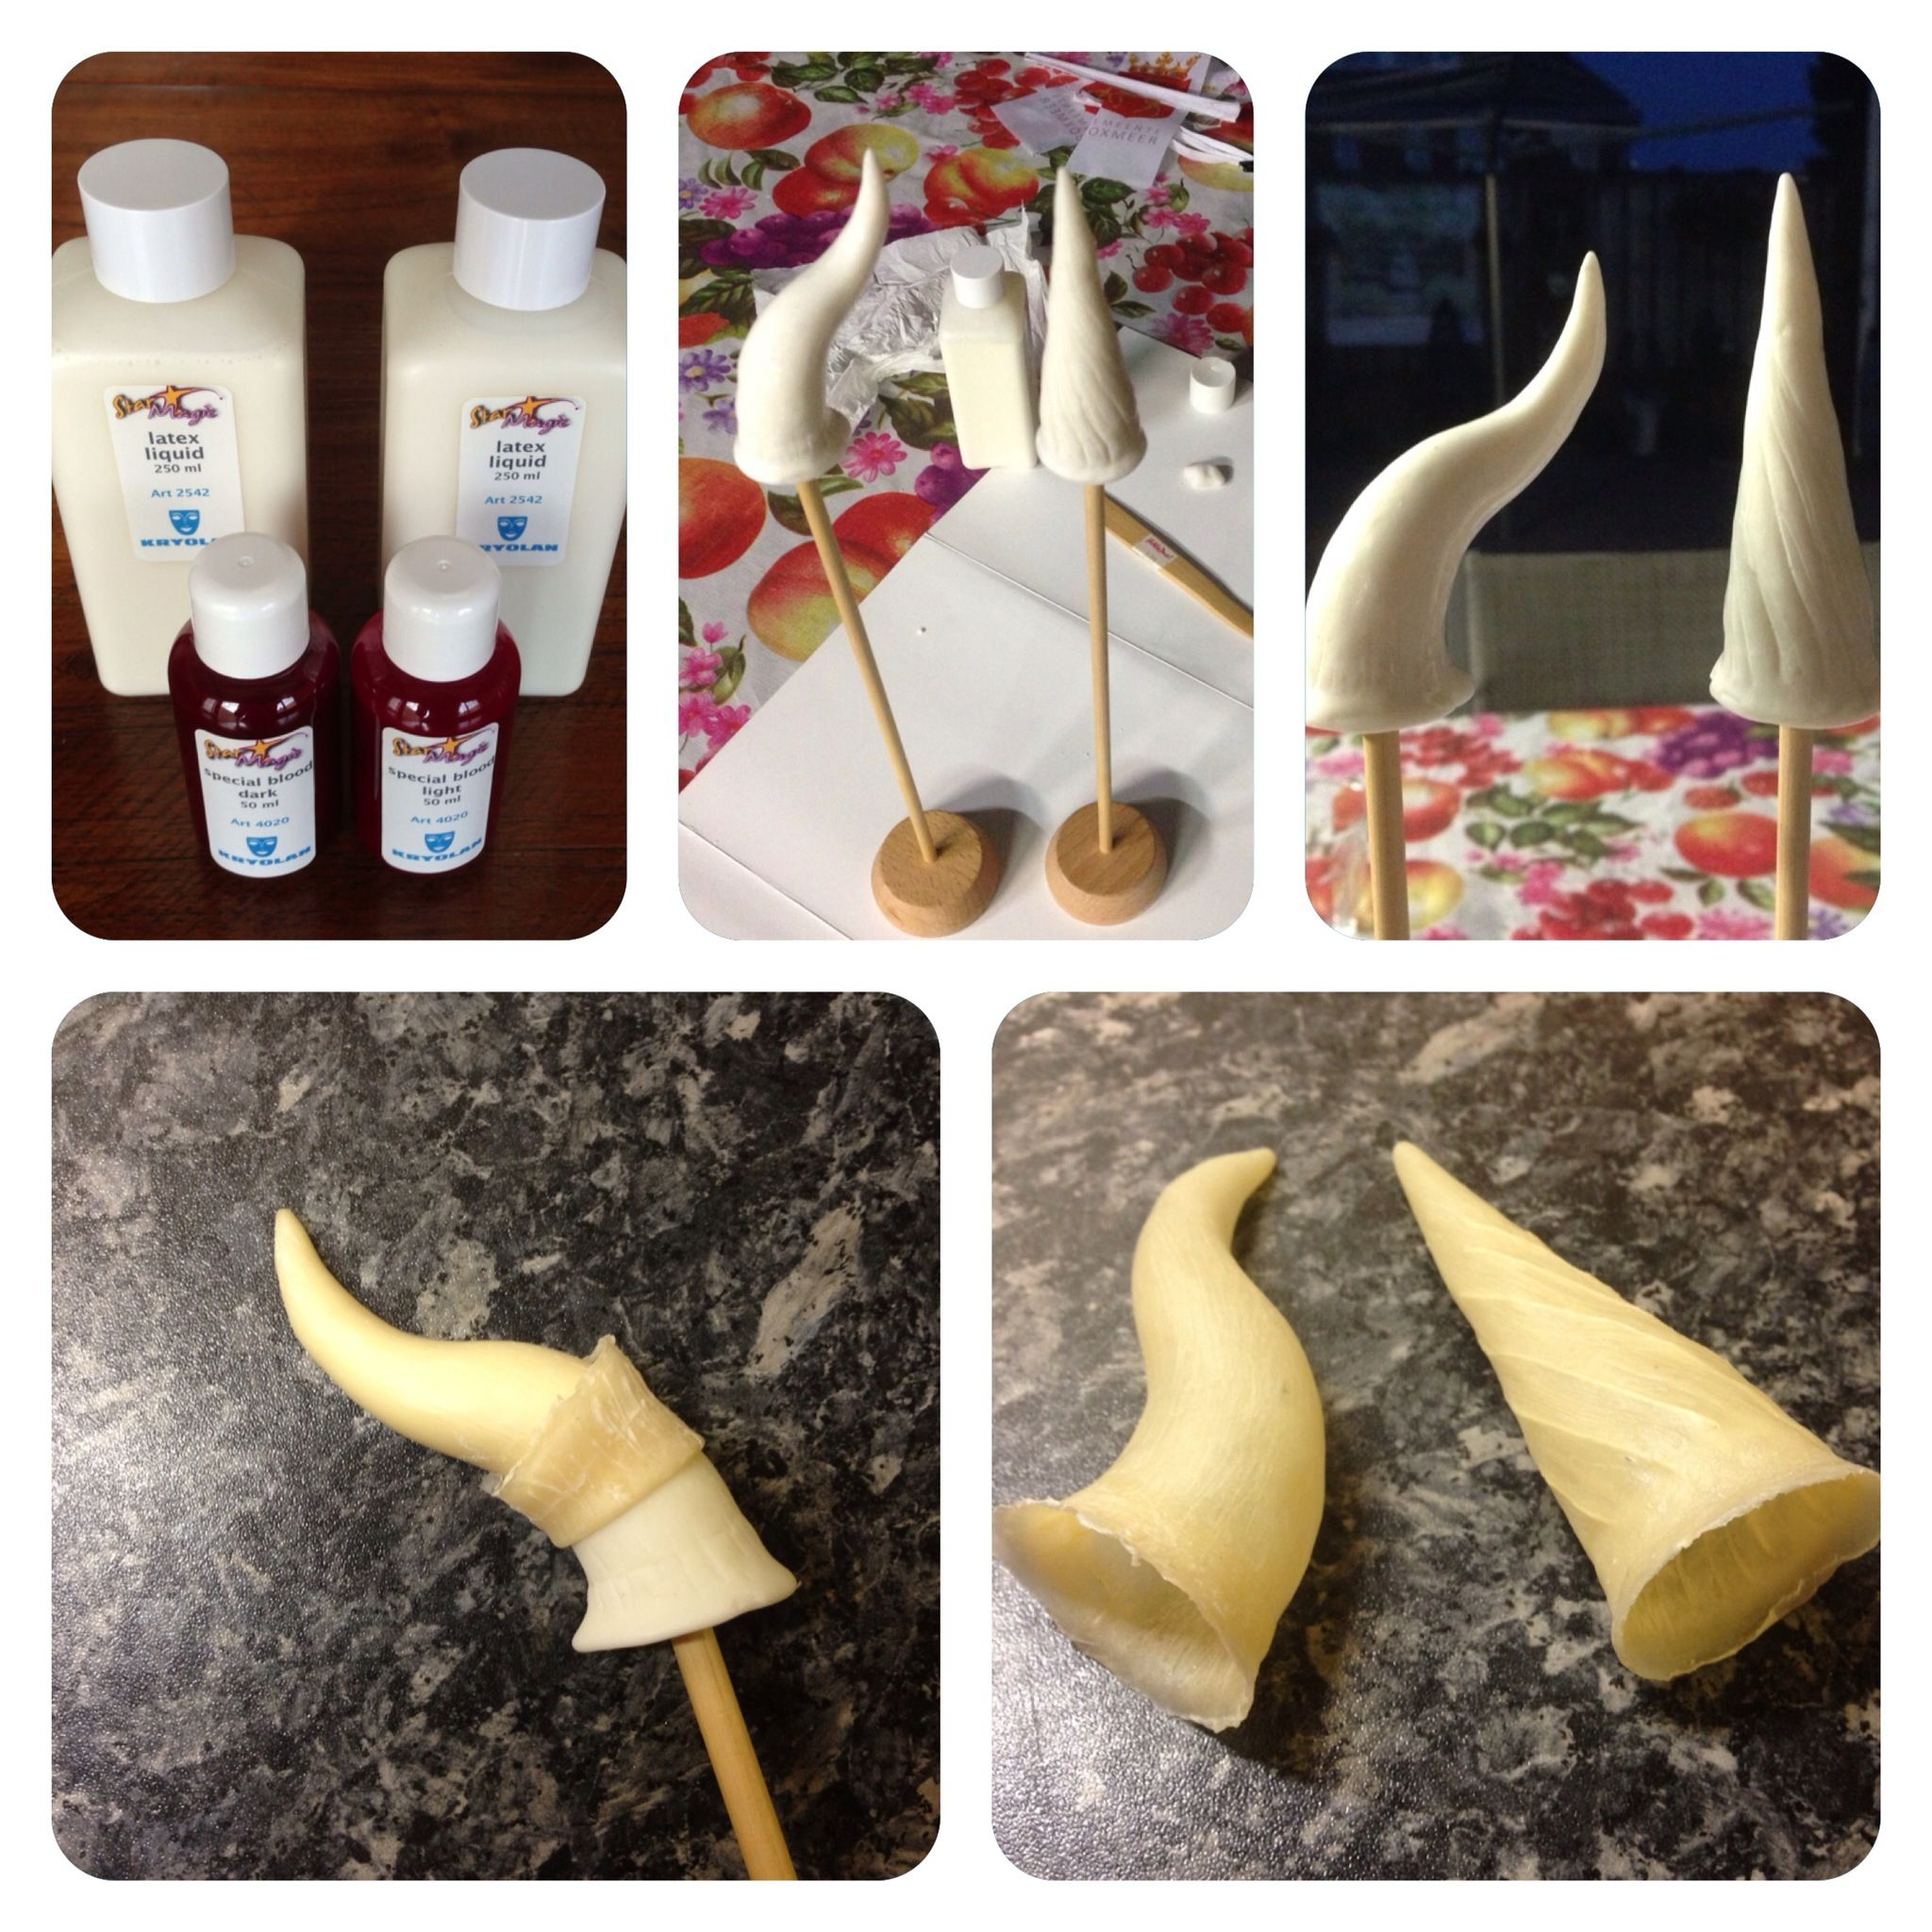 Horns sculpted out of fimo clay. Covered them in several layers of liquid latex to create a light weight application.